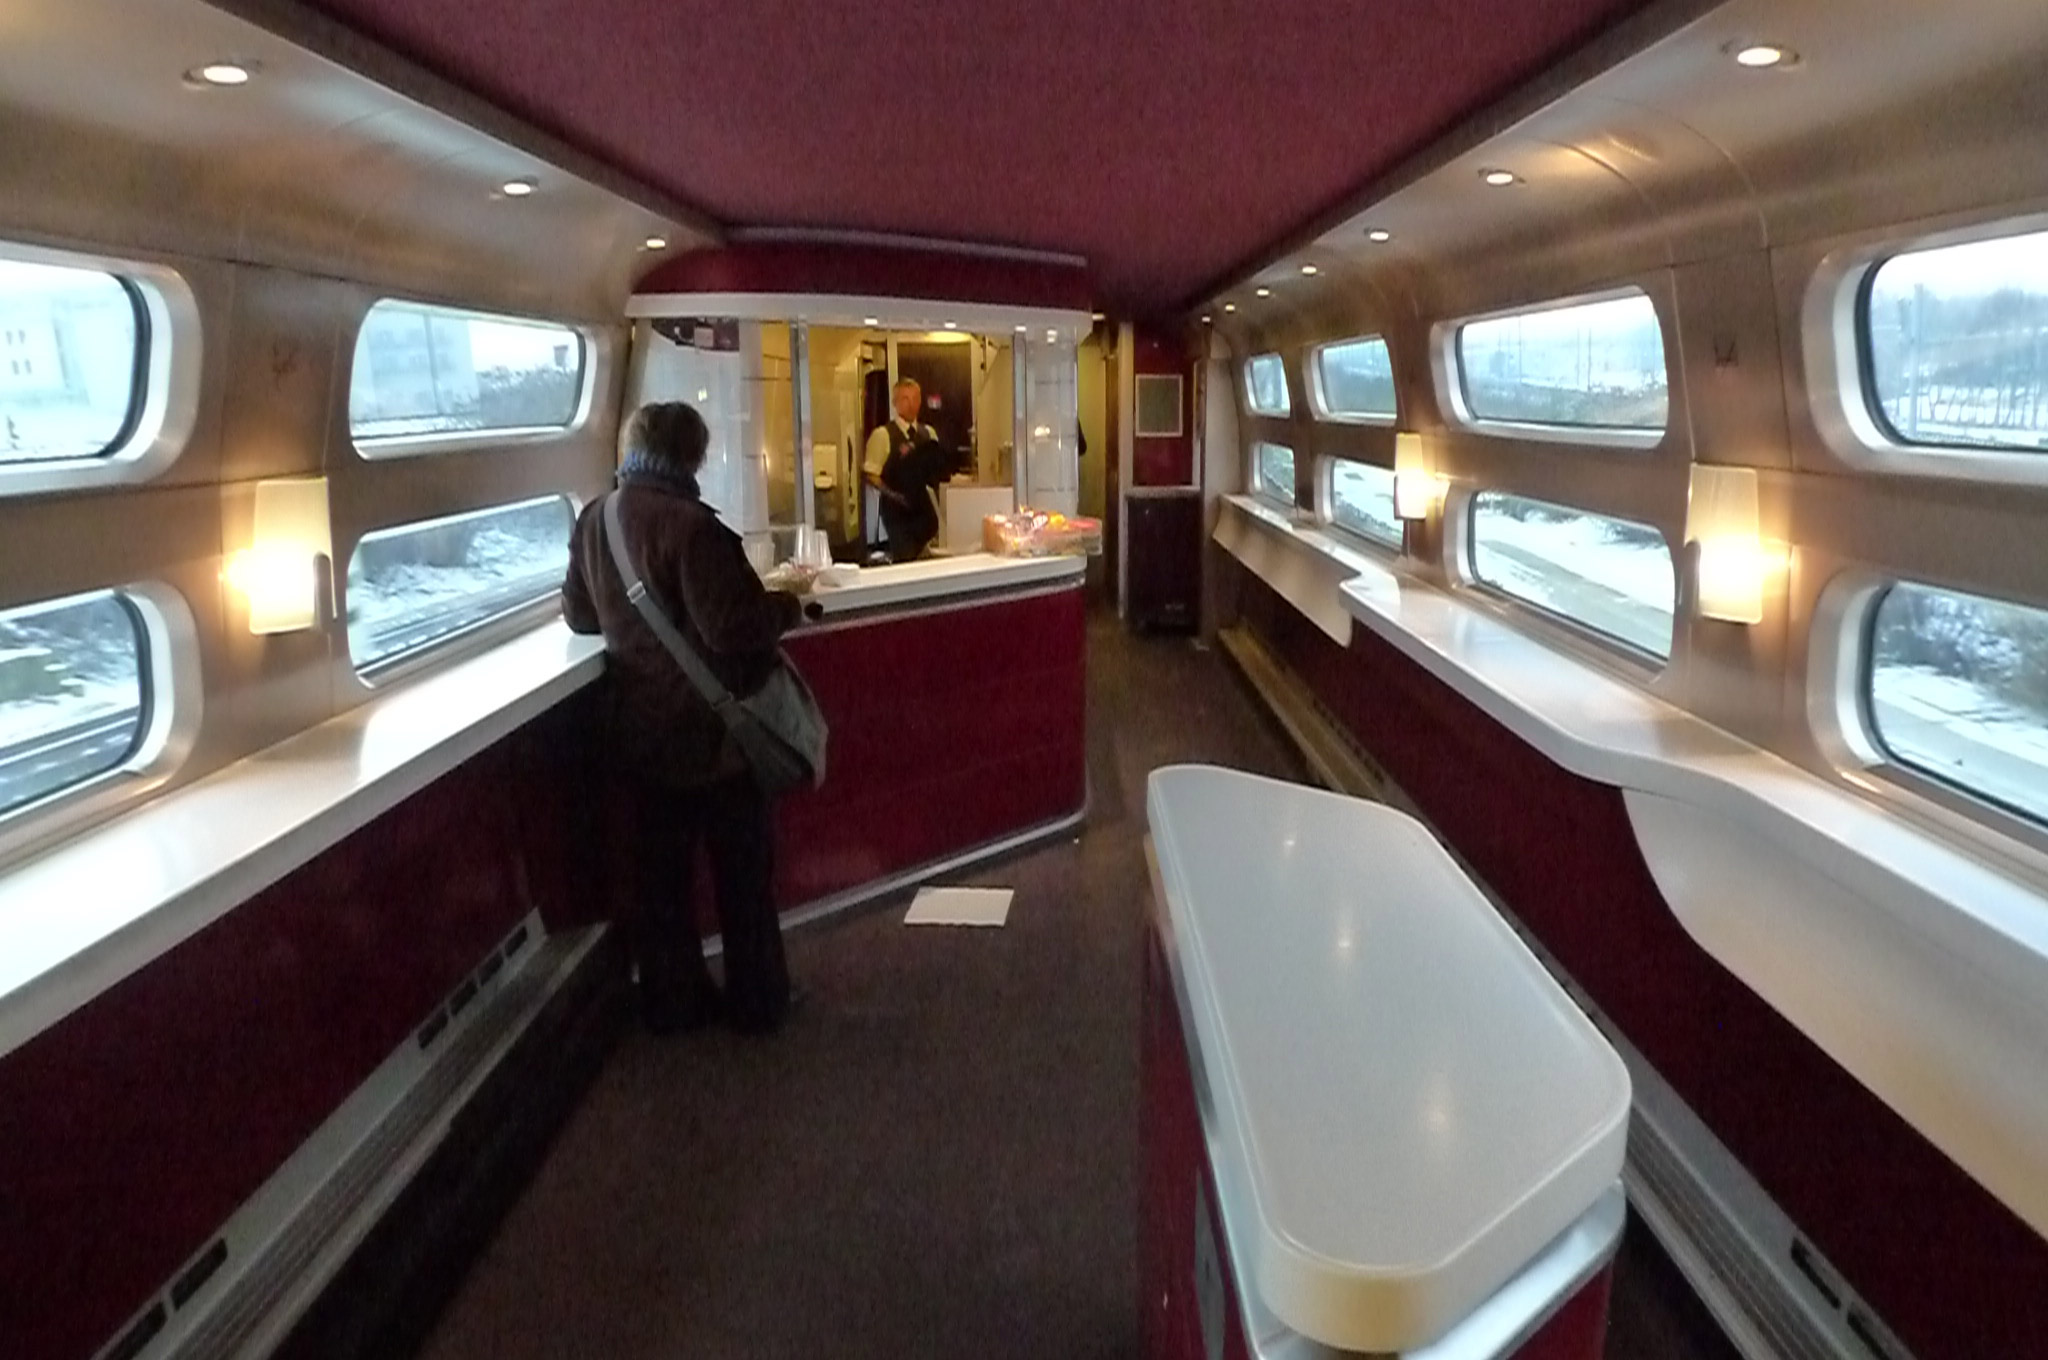 Paris To Amsterdam By Train From 35 Thalys High Speed